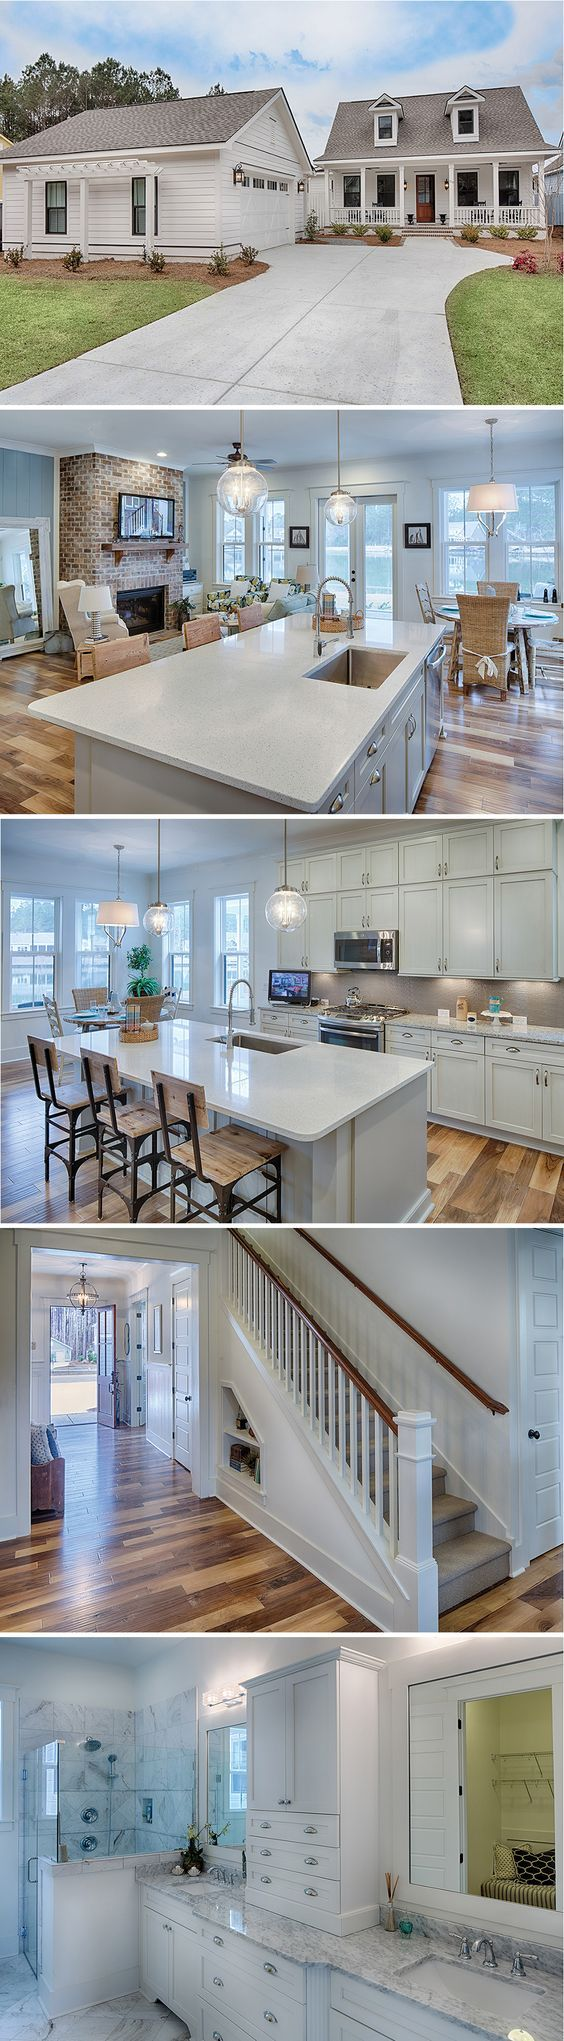 Lovely Lowcountry home located at Hampton Lake in Bluffton, SC.: